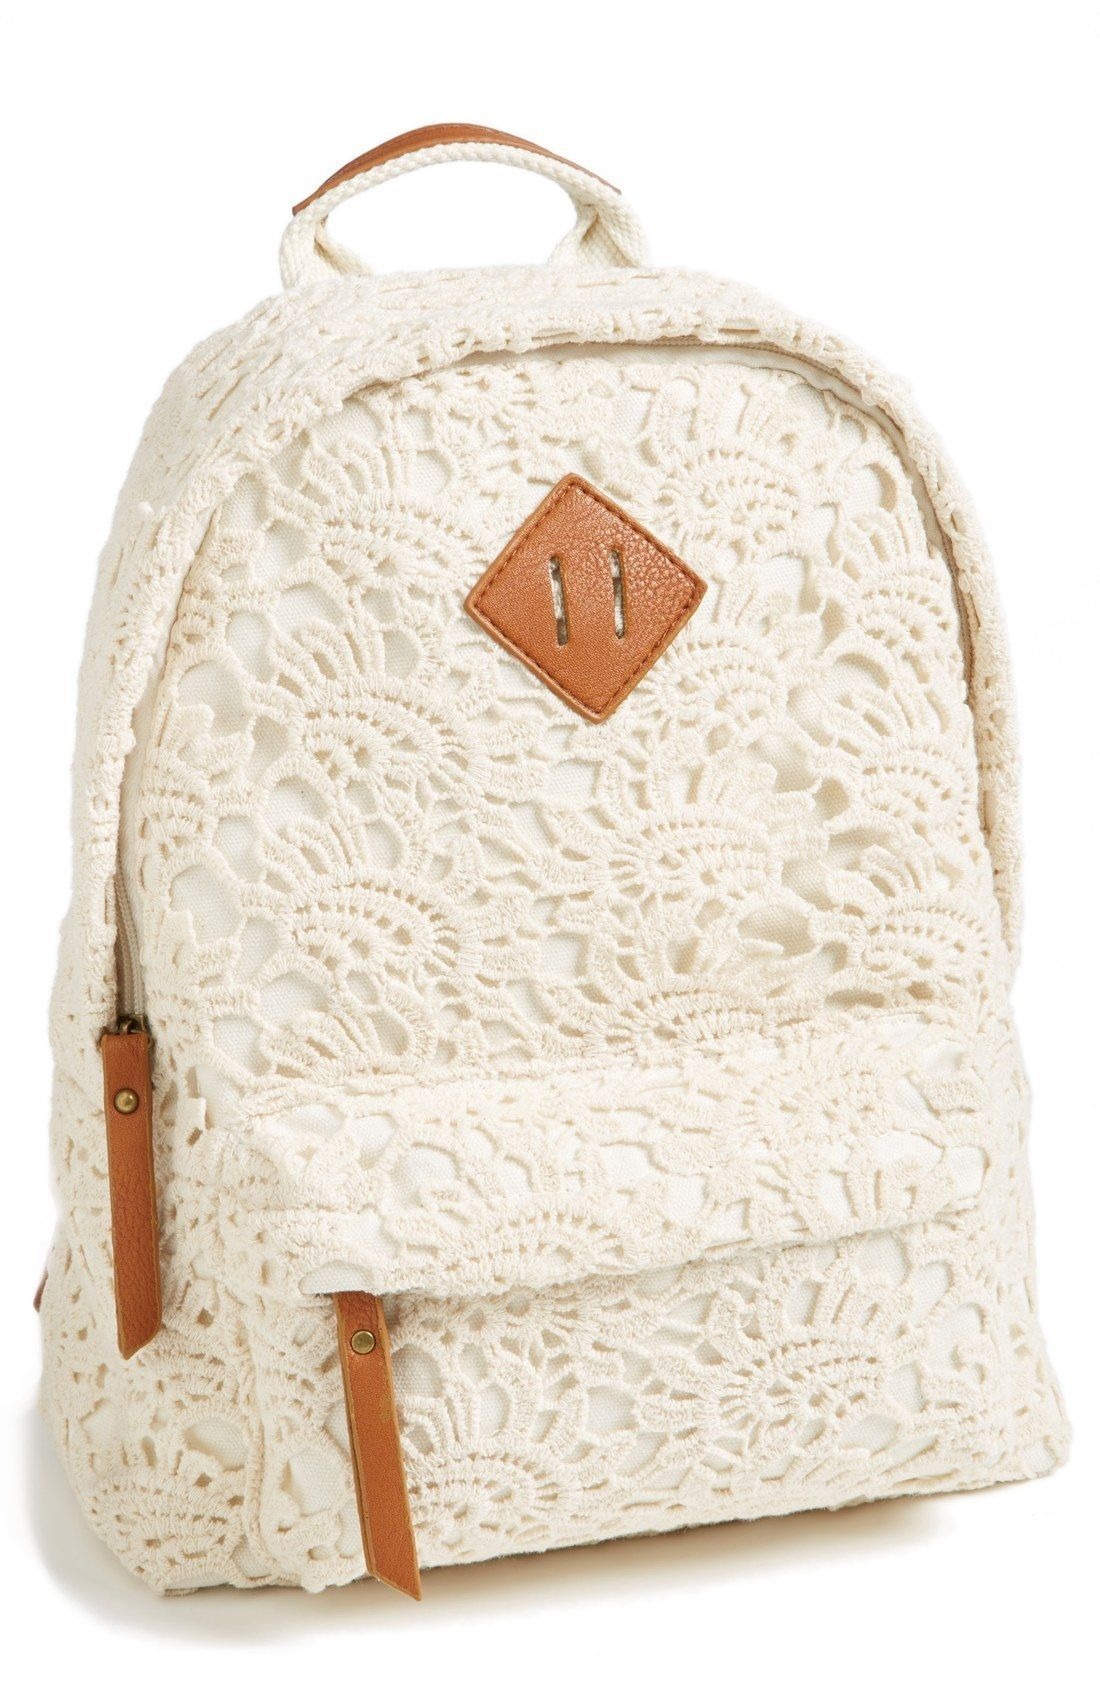 Madden Girl Crochet Backpack (Juniors) by Kendall & Kylie - Found on HeartThis.com @HeartThis   See item http://www.heartthis.com/product/214898153408773127/